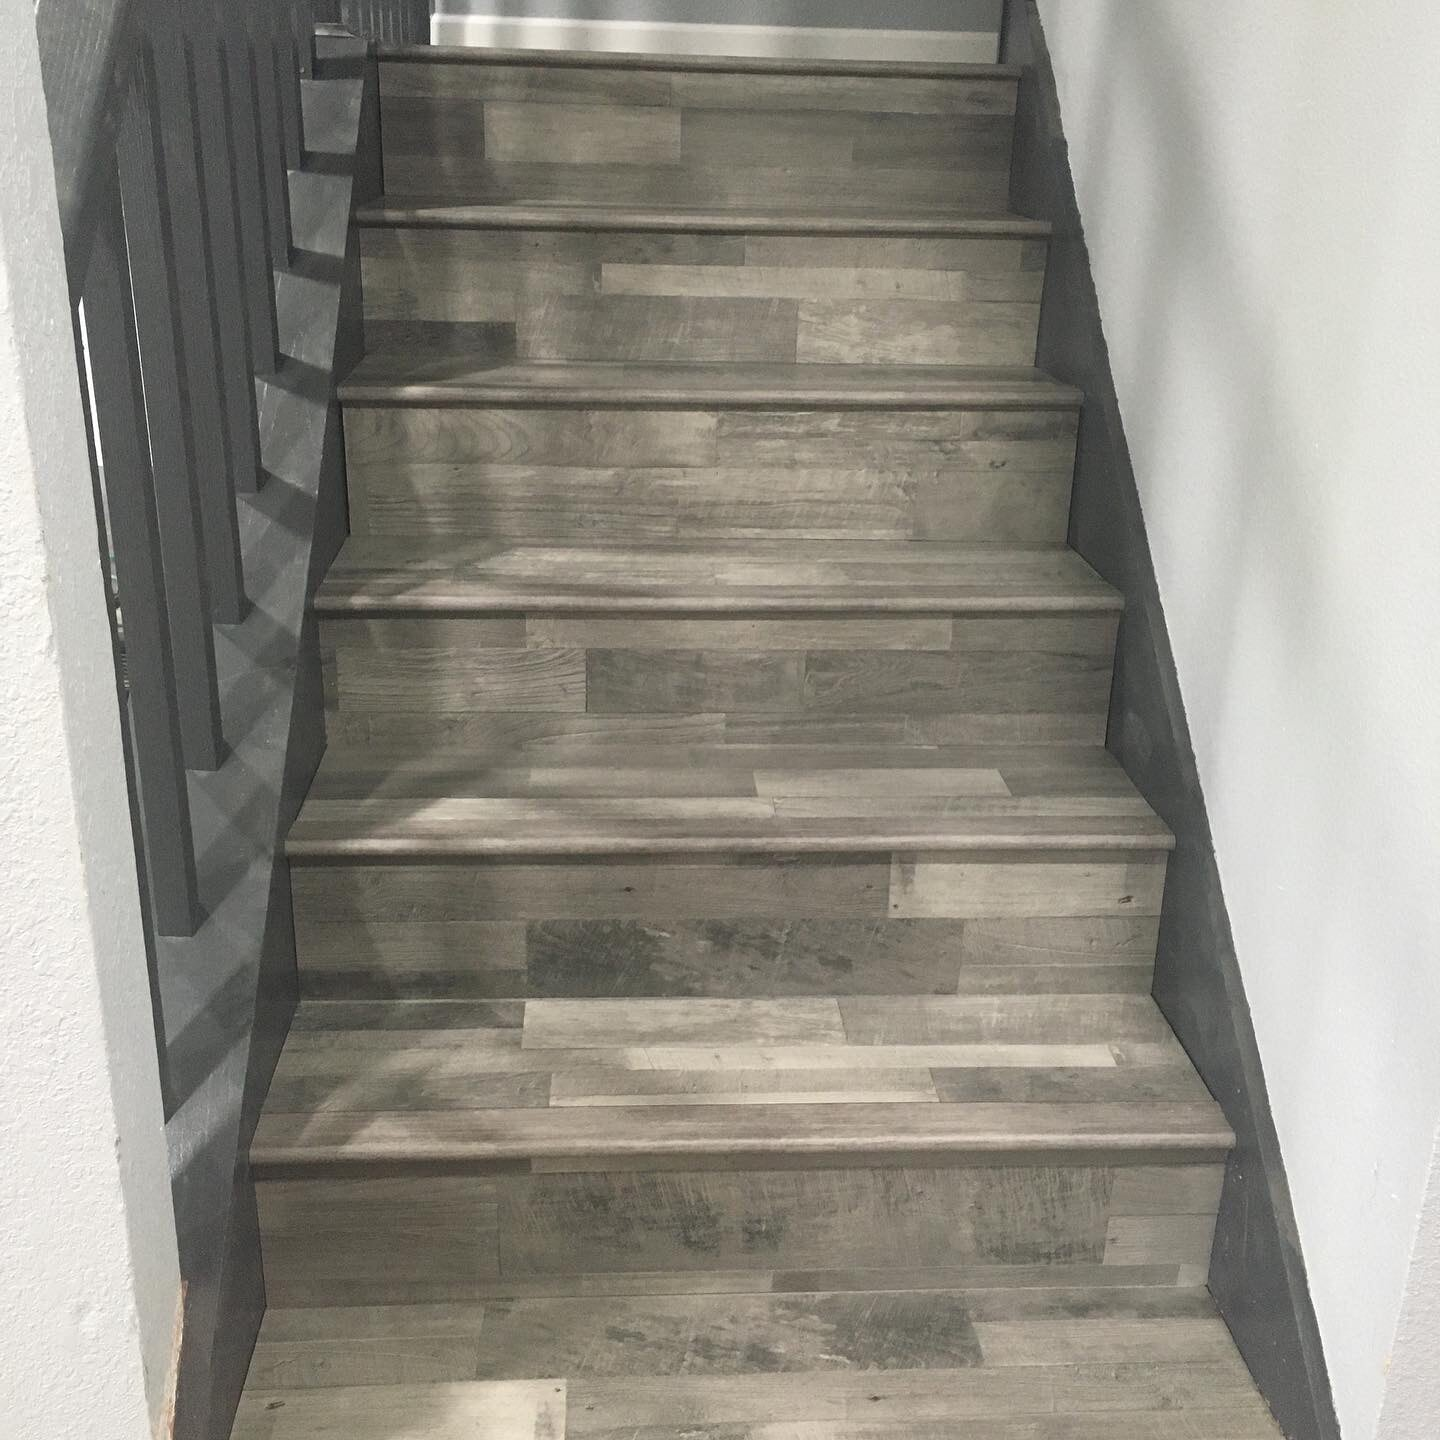 Hardwood stairs from Houston Floor Installation Services in Conroe, TX